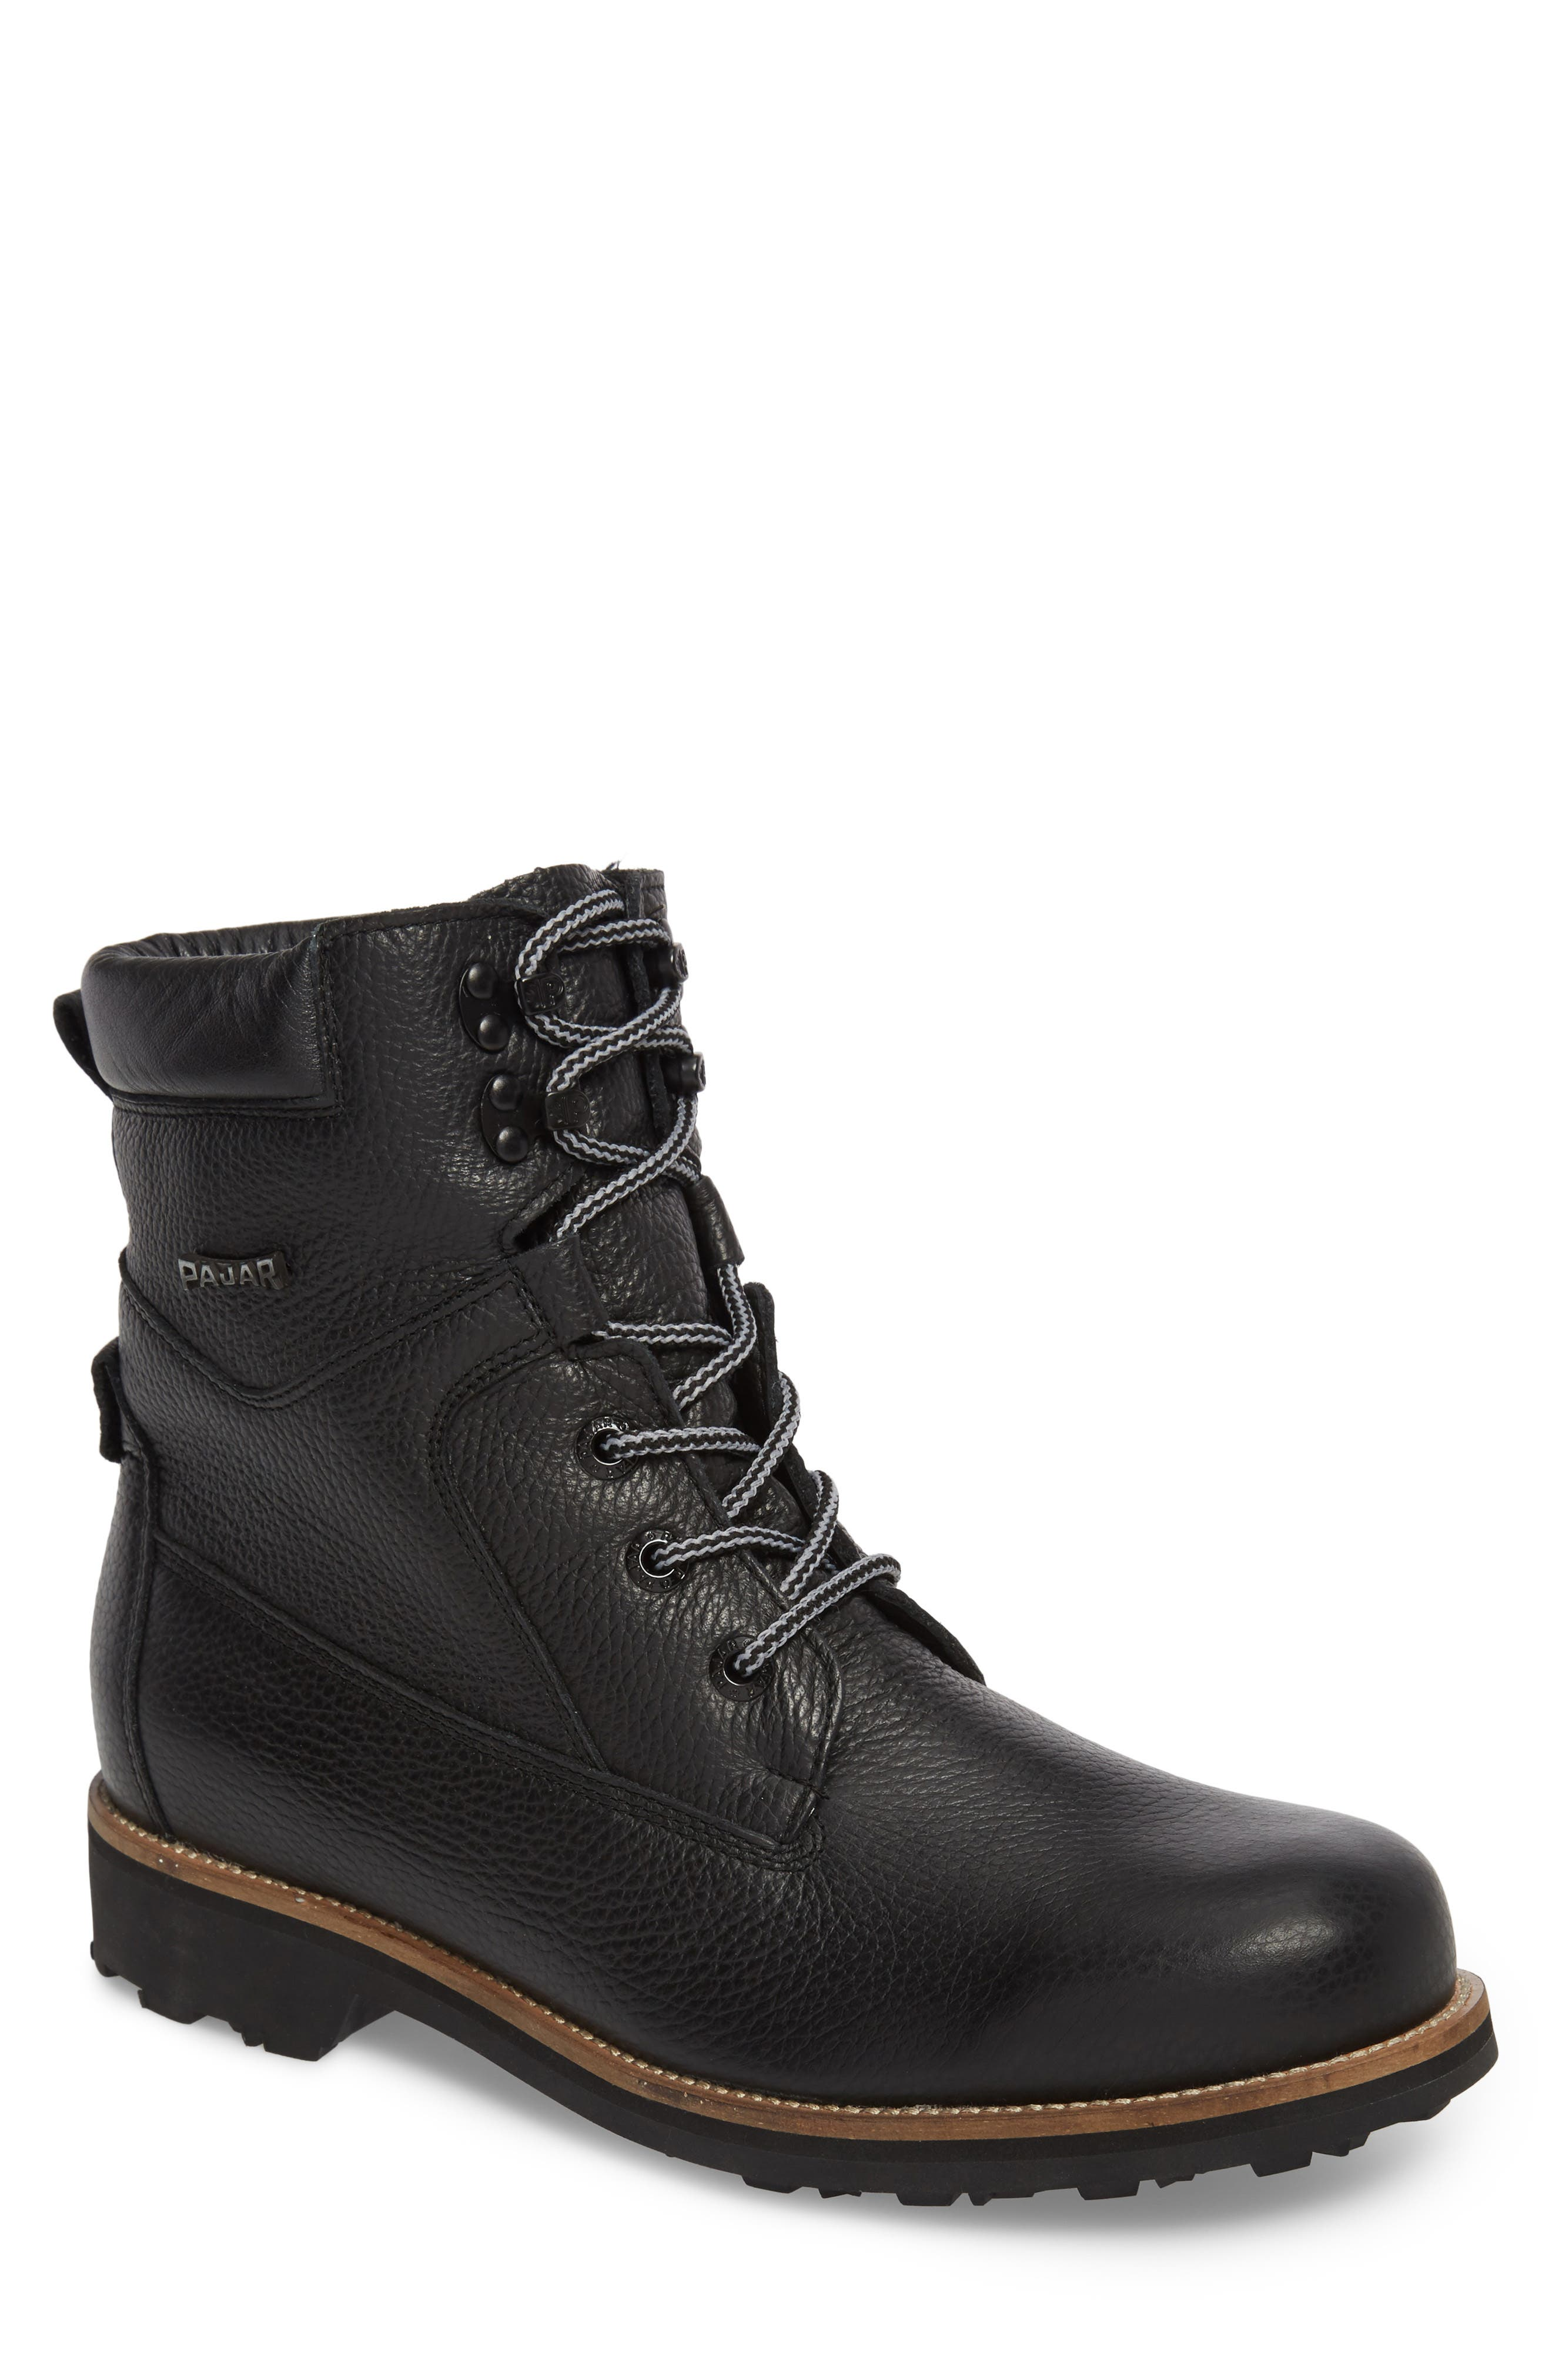 PAJAR,                             David Plain Toe Waterproof Boot,                             Main thumbnail 1, color,                             BLACK LEATHER